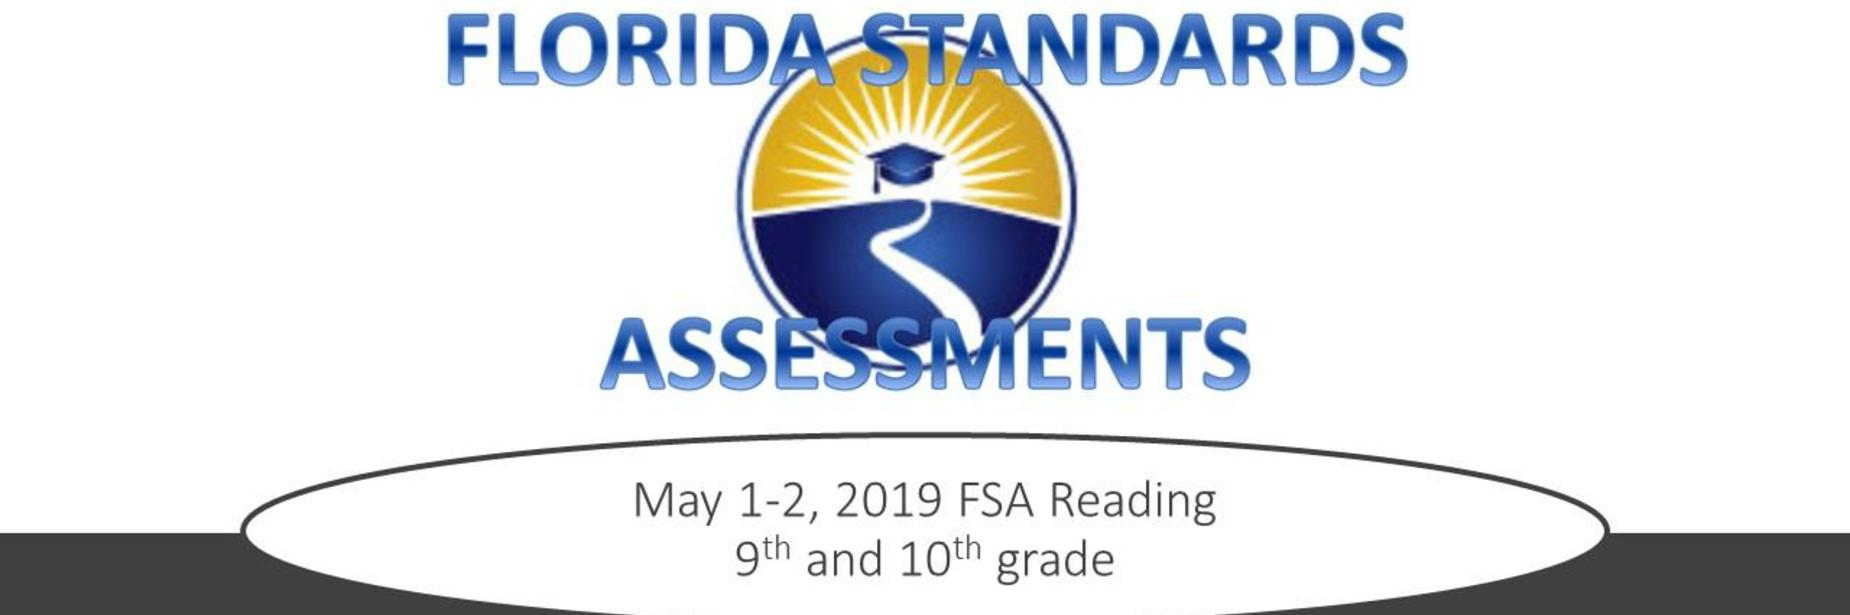 Florida Standards Assessments: May 1-2, 2019 FSA Reading 9th and 10th grade